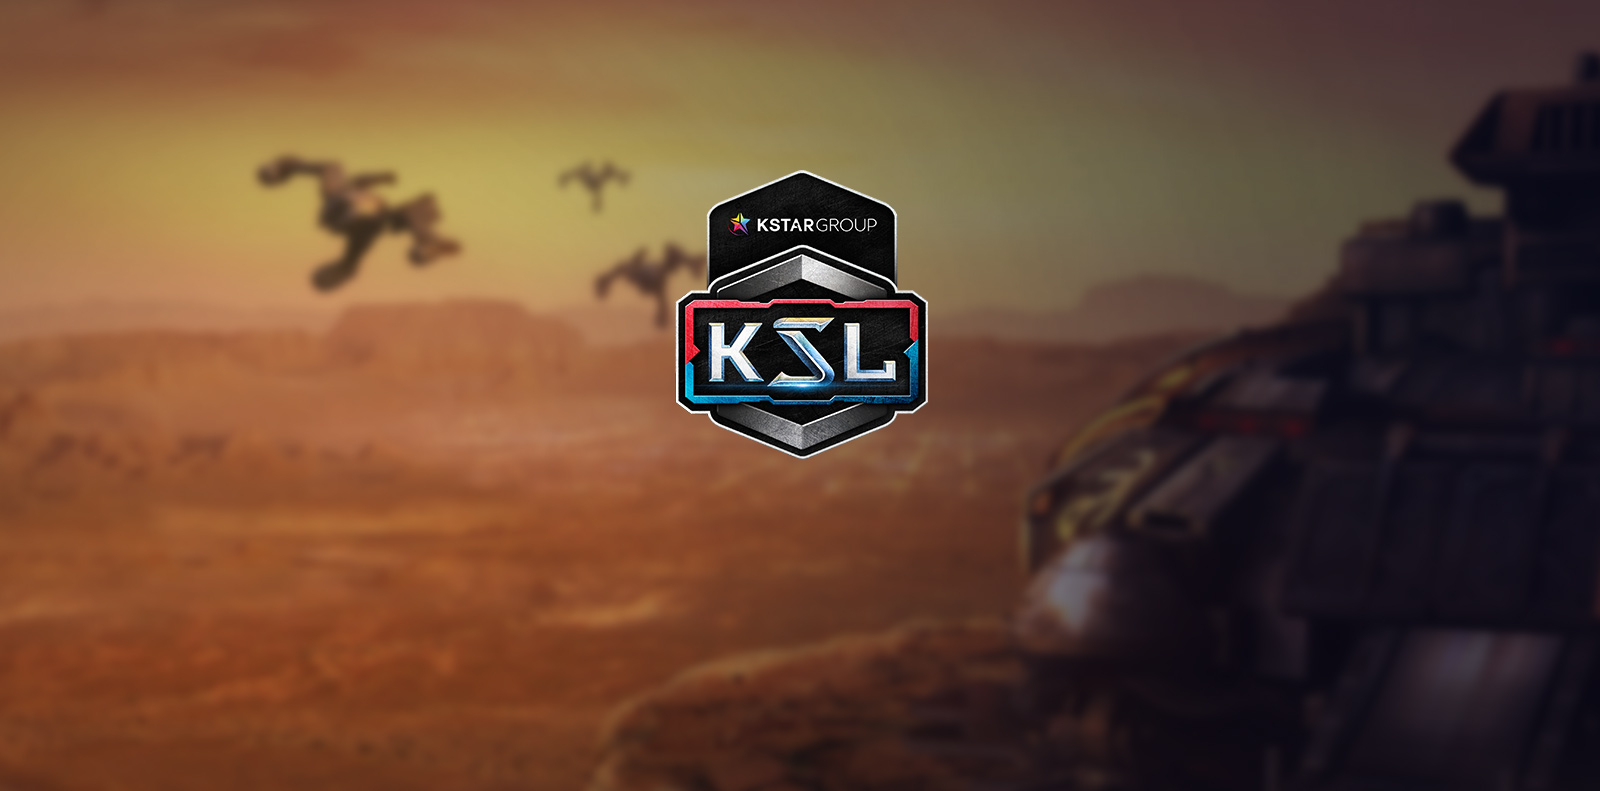 Come join us for KSL Season 2!